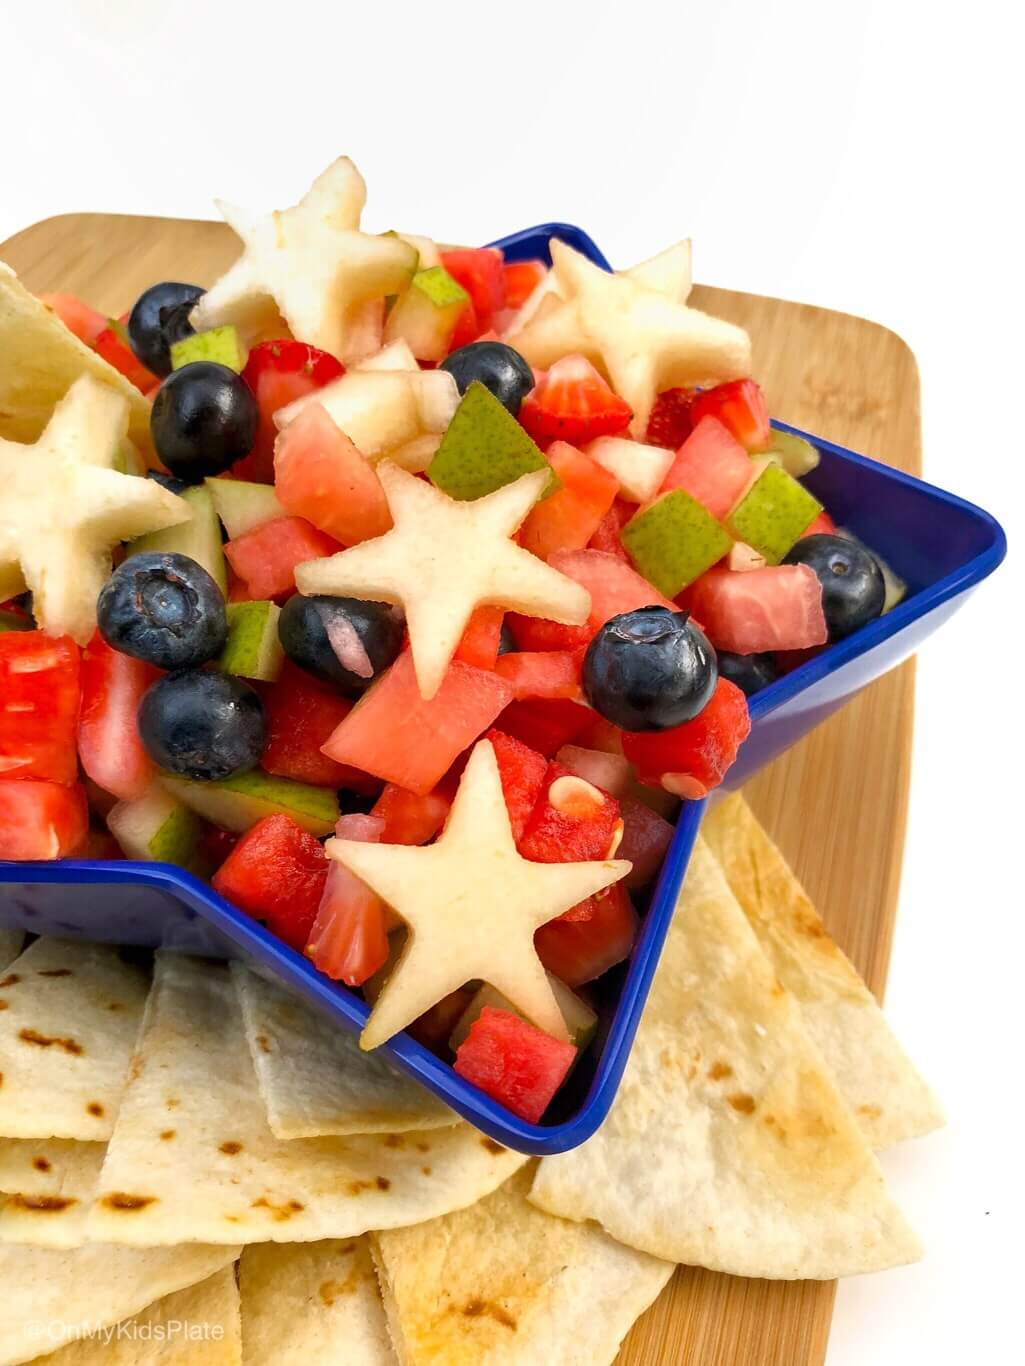 Sweet but healthy fruit salsa is a great red white and blue side to add to your bbq. Enjoy this yummy kid friendly salsa that is perfect to for a crowd or a potluck. #fruit #salsa #kidfriendly #partyfood #recipe #fourthofjuly